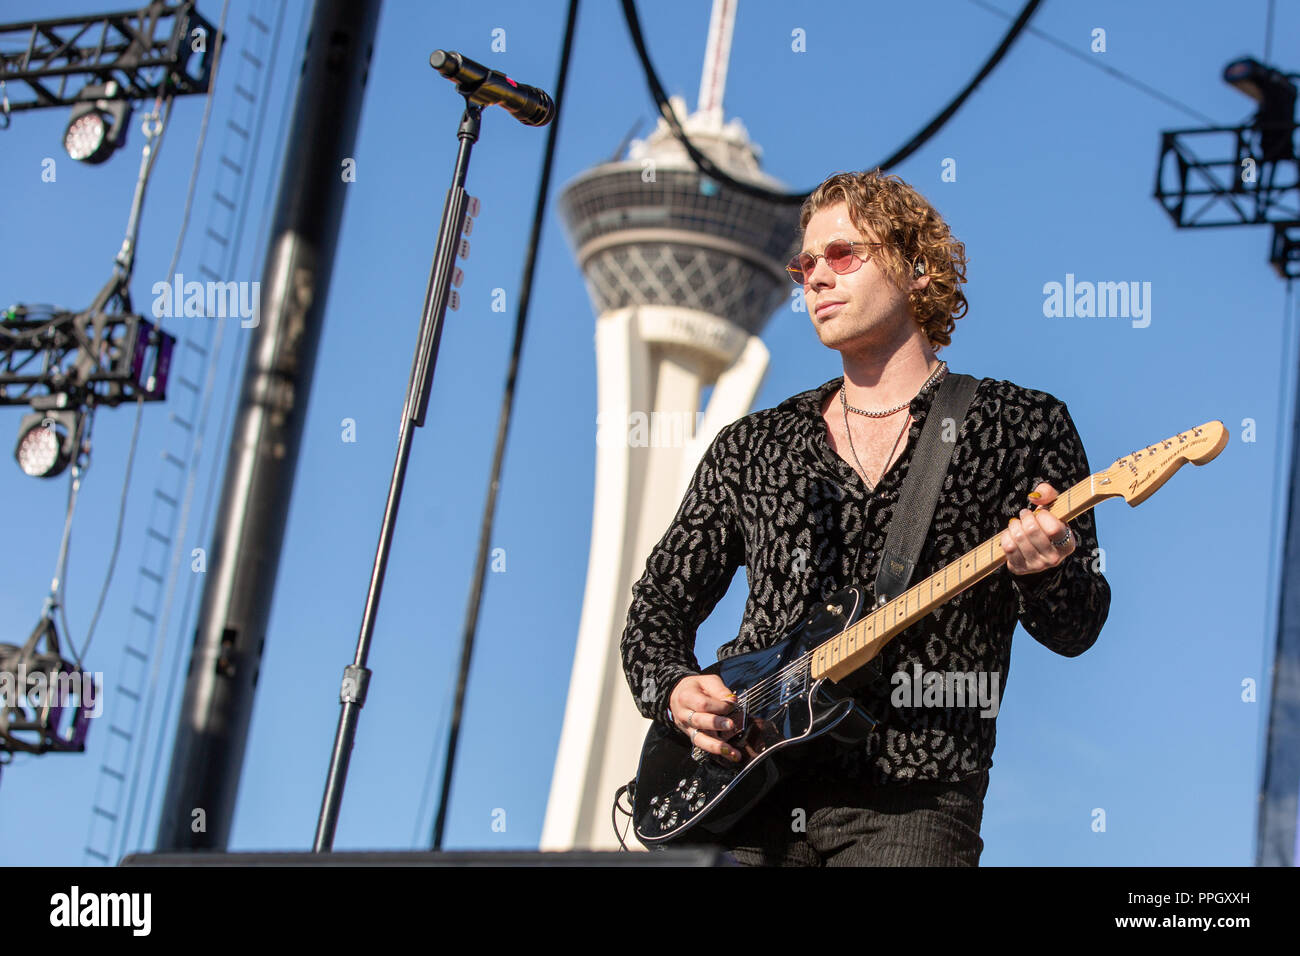 Hd55 Luke Hemmings 5 Seconds Of Summer Music: 5sos And Stage Stock Photos & 5sos And Stage Stock Images